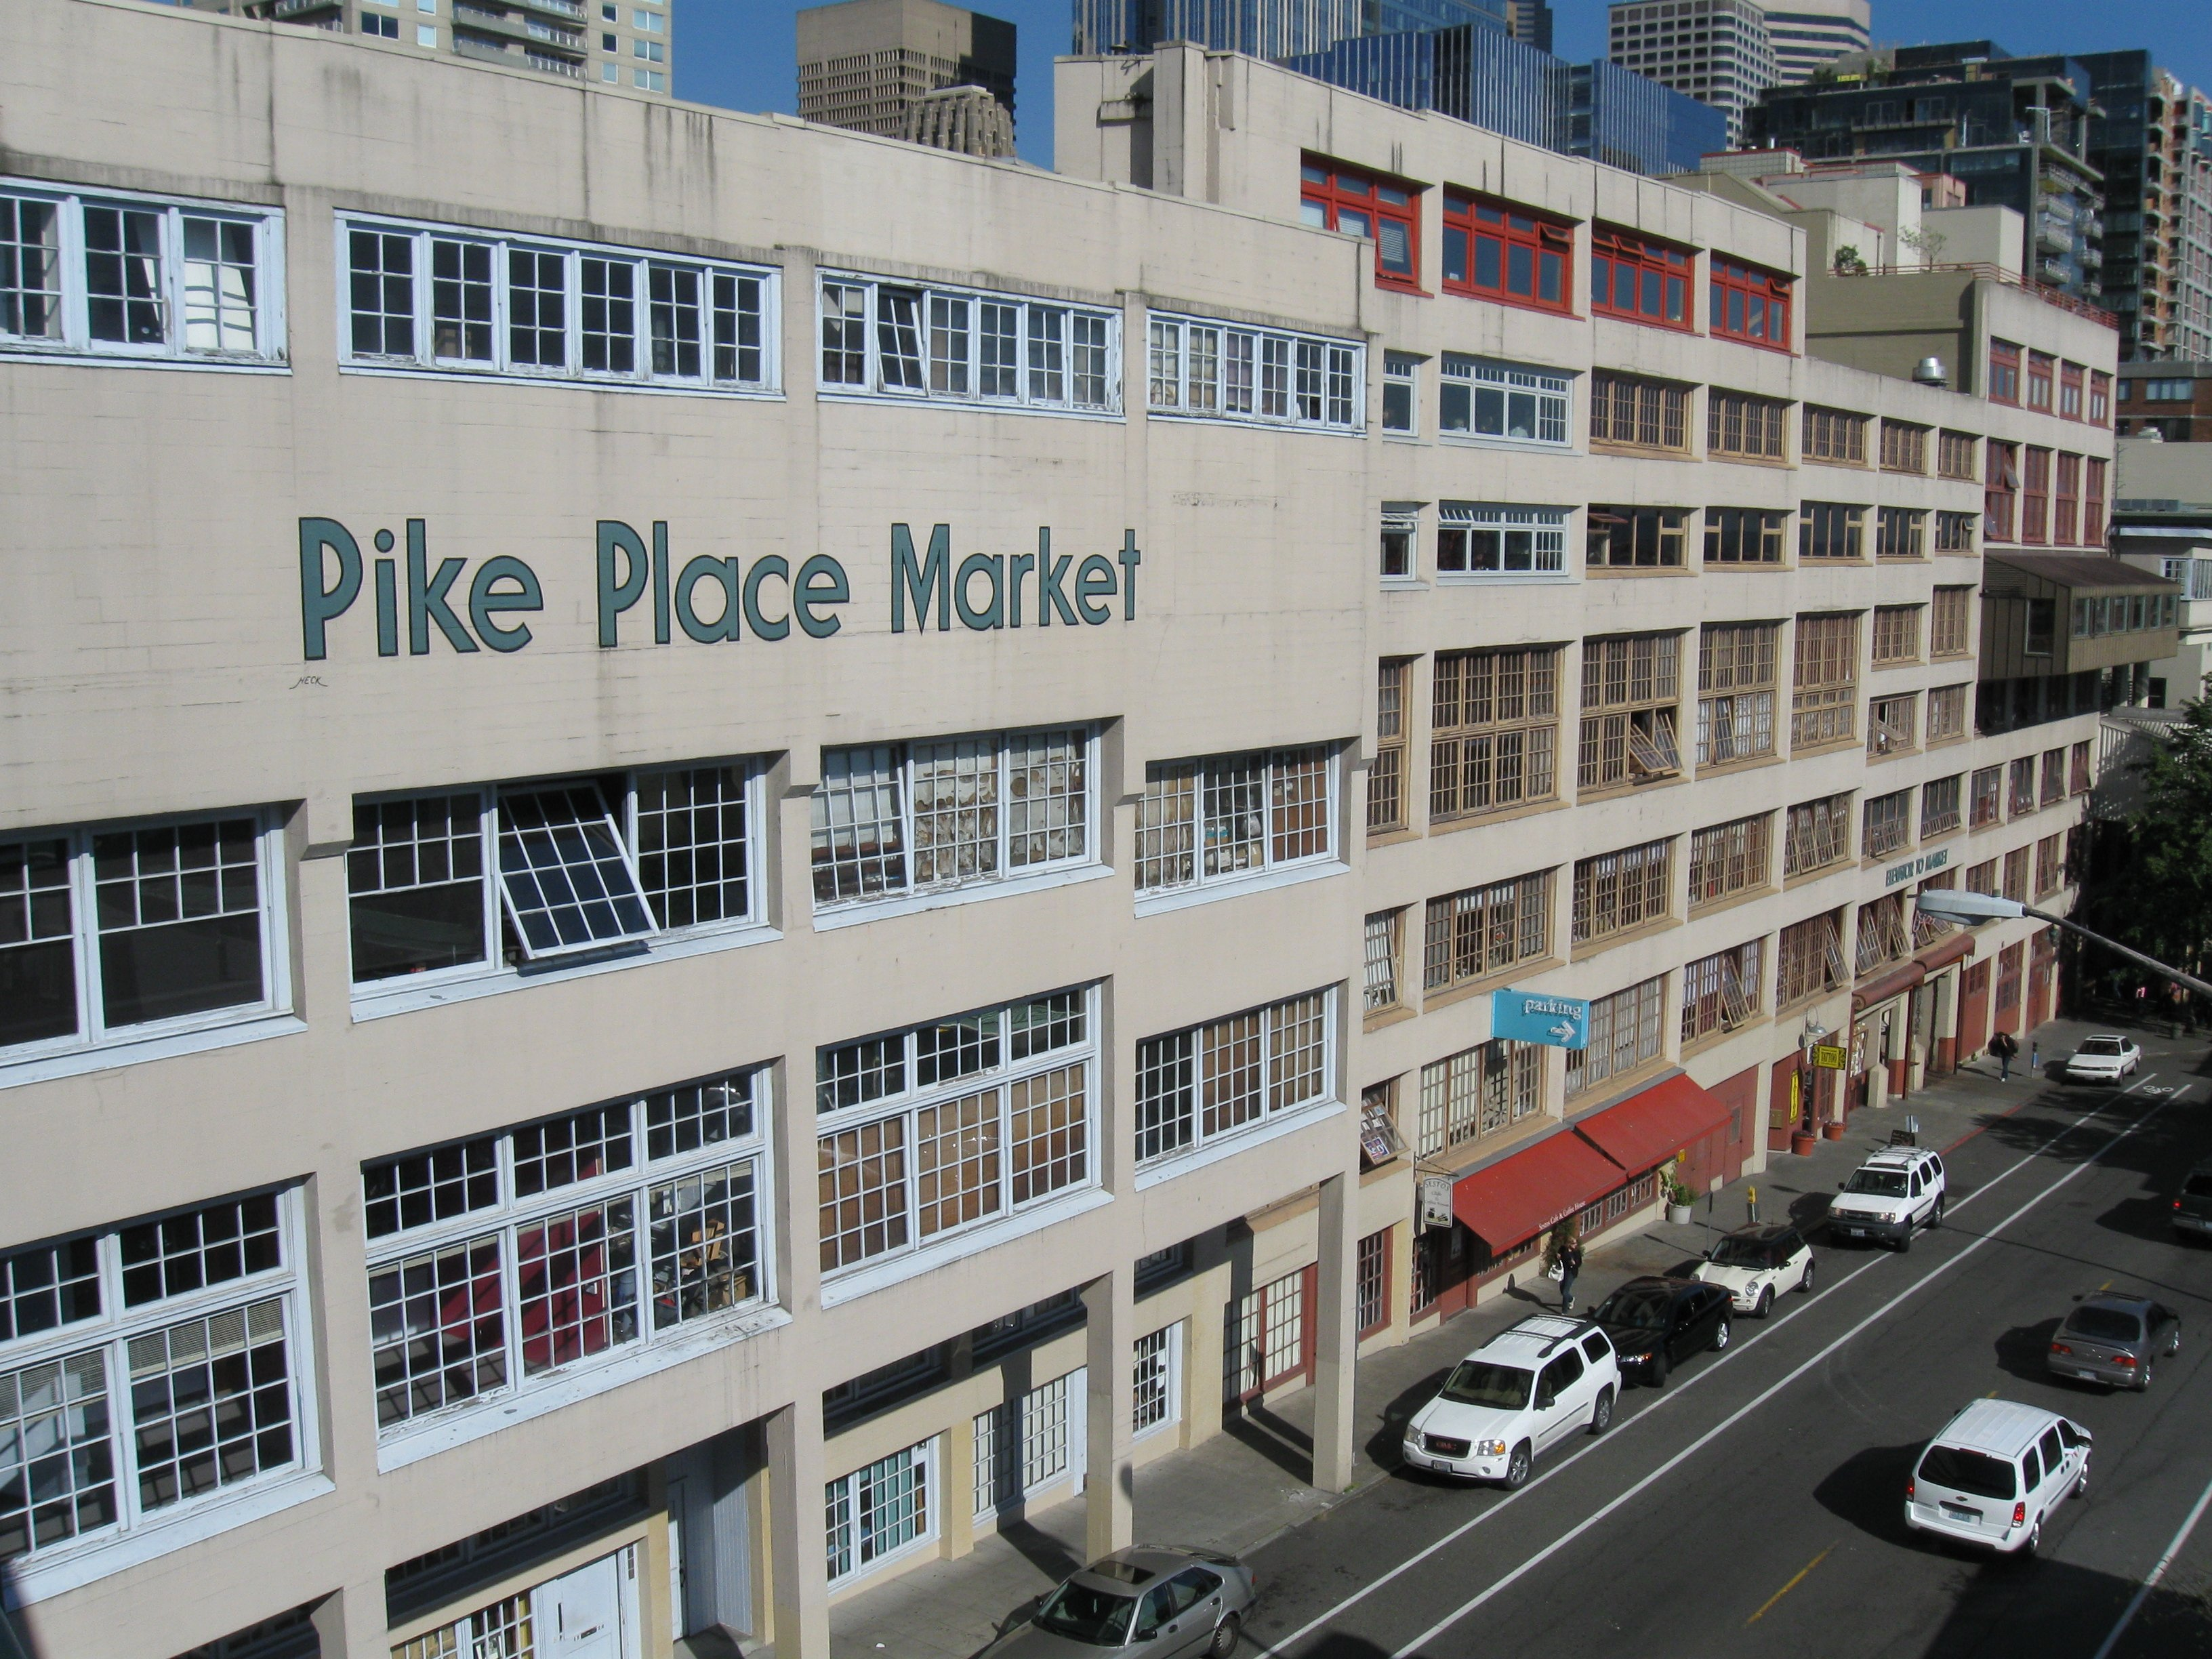 Pike Place Market In 2008 As Seen From Above Western Avenue The Top Floor Painted Text Is Street Level With